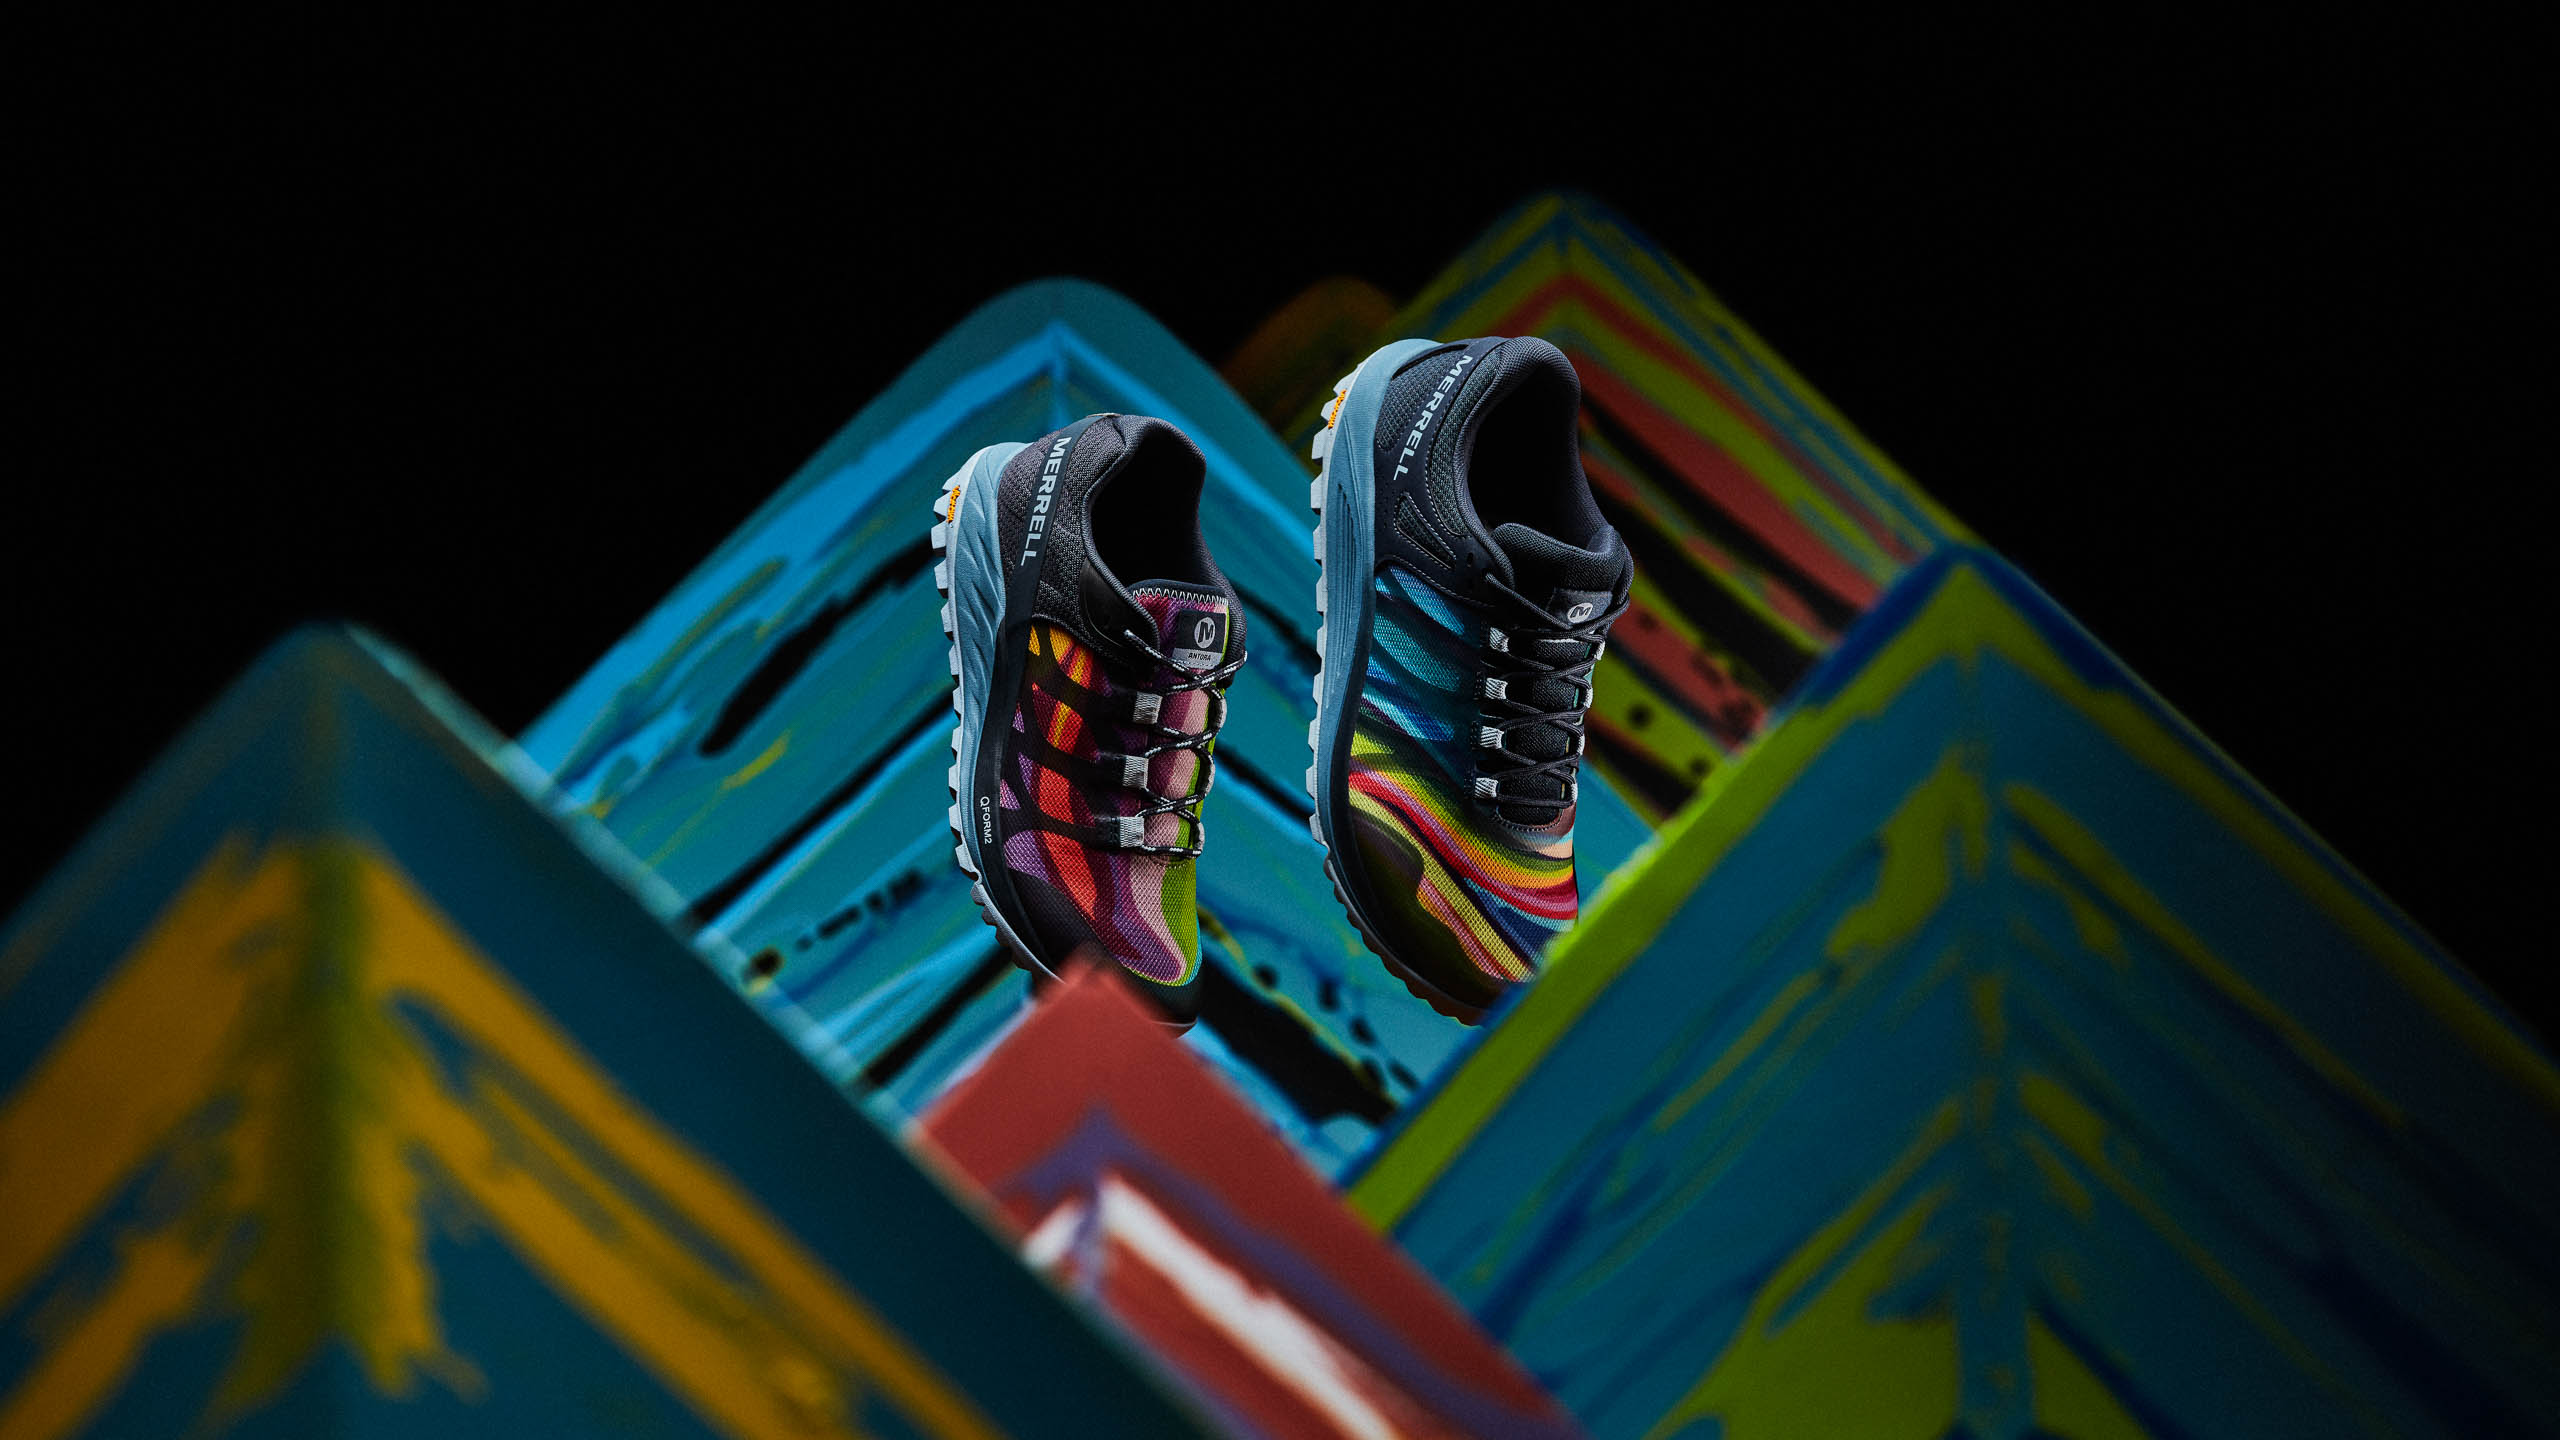 Merrell Nova and Antora inspired by the Painted Mountains